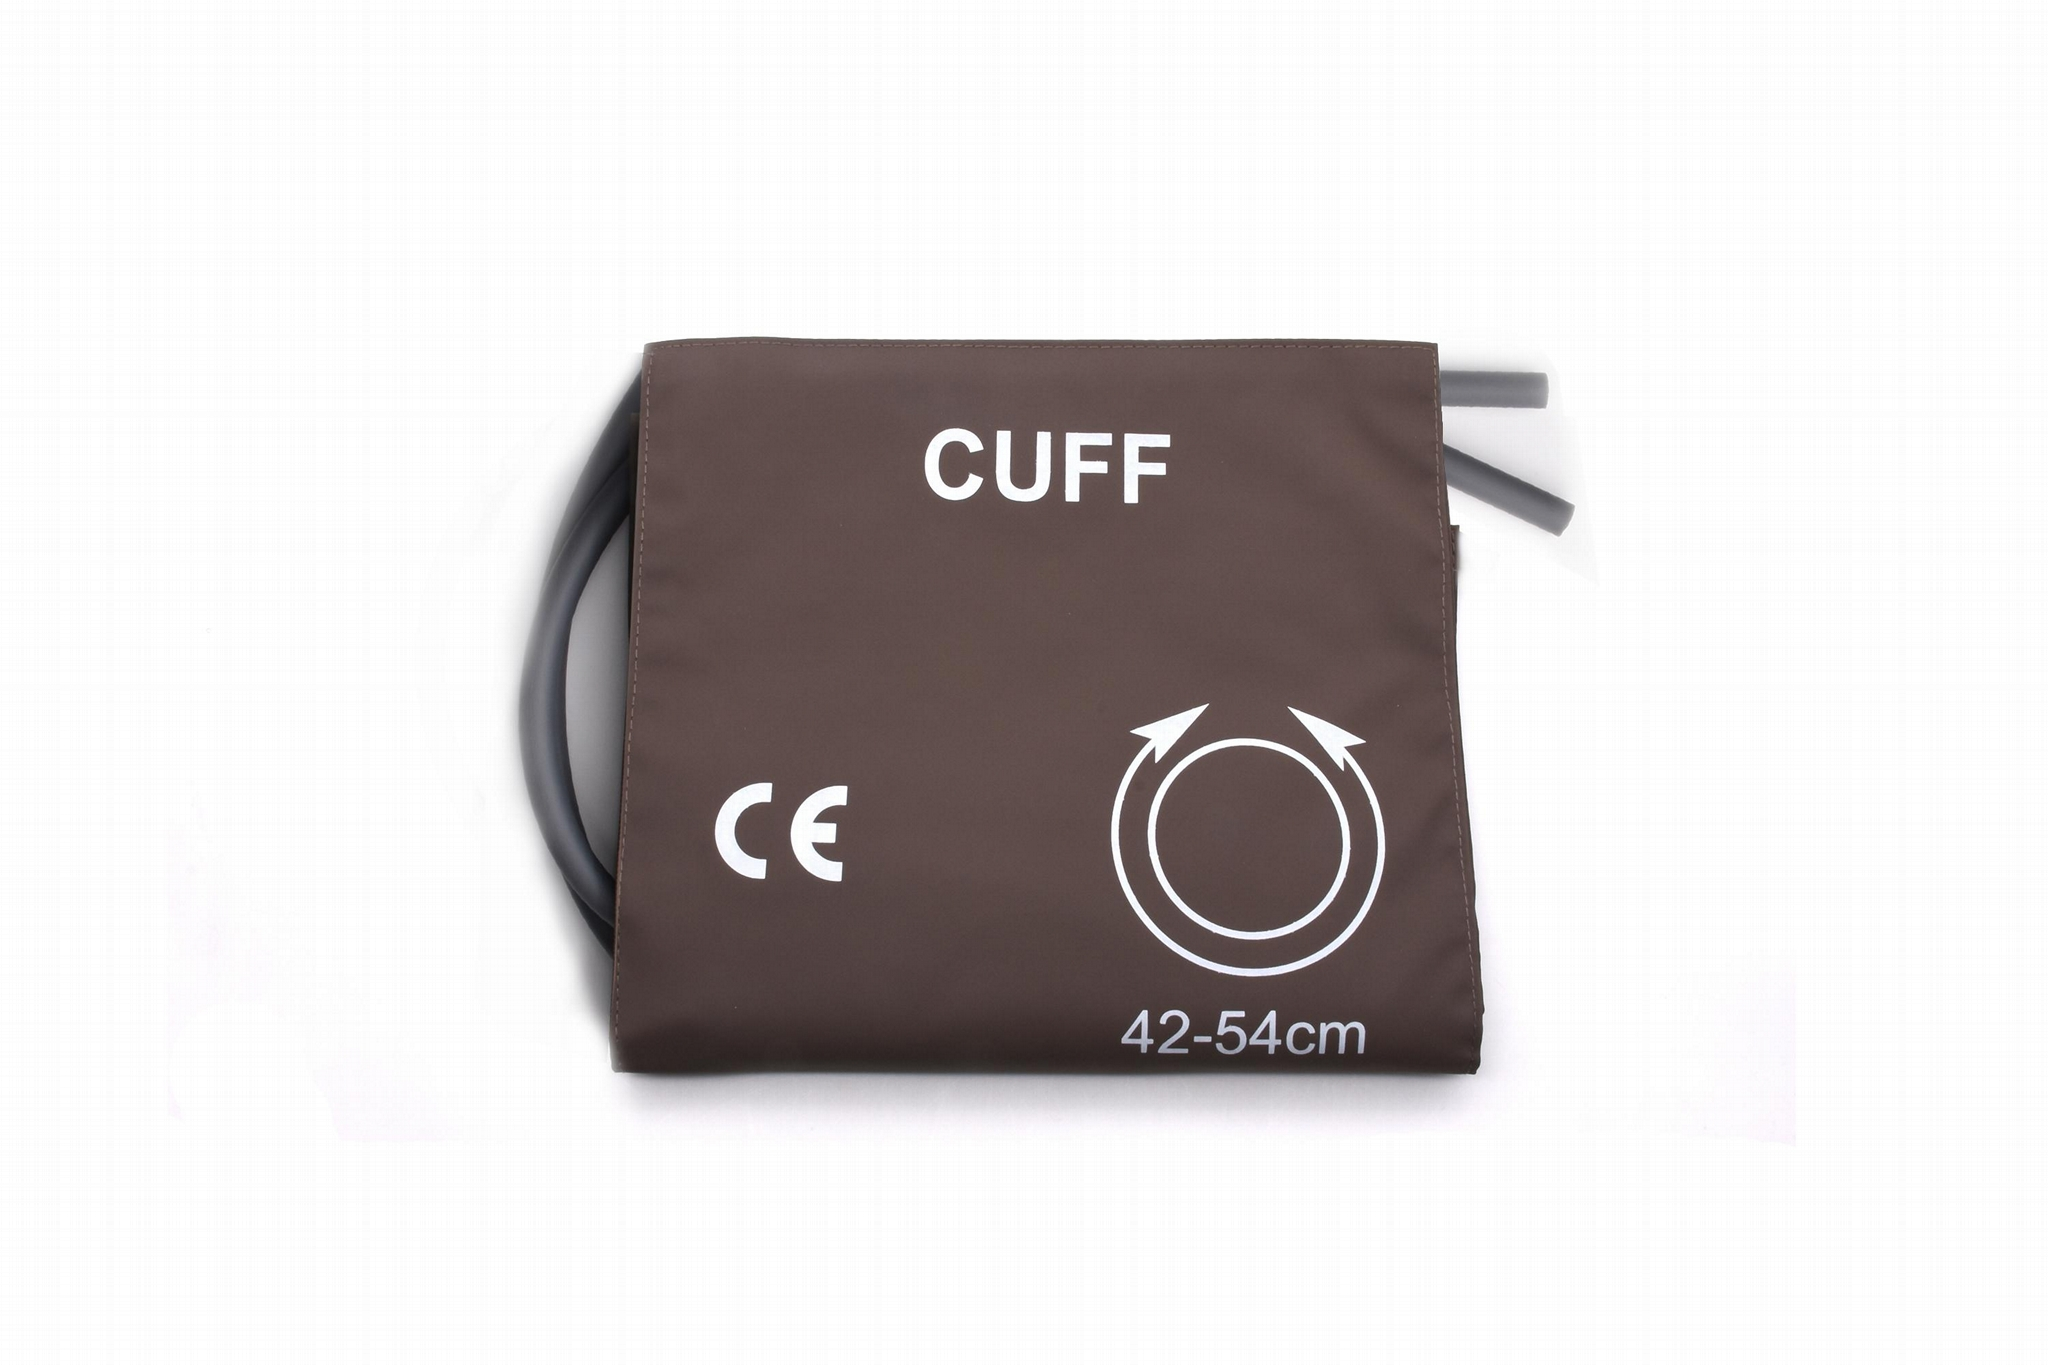 ODM 42-54cm thigh blood pressure NIBP cuff with double tube 1